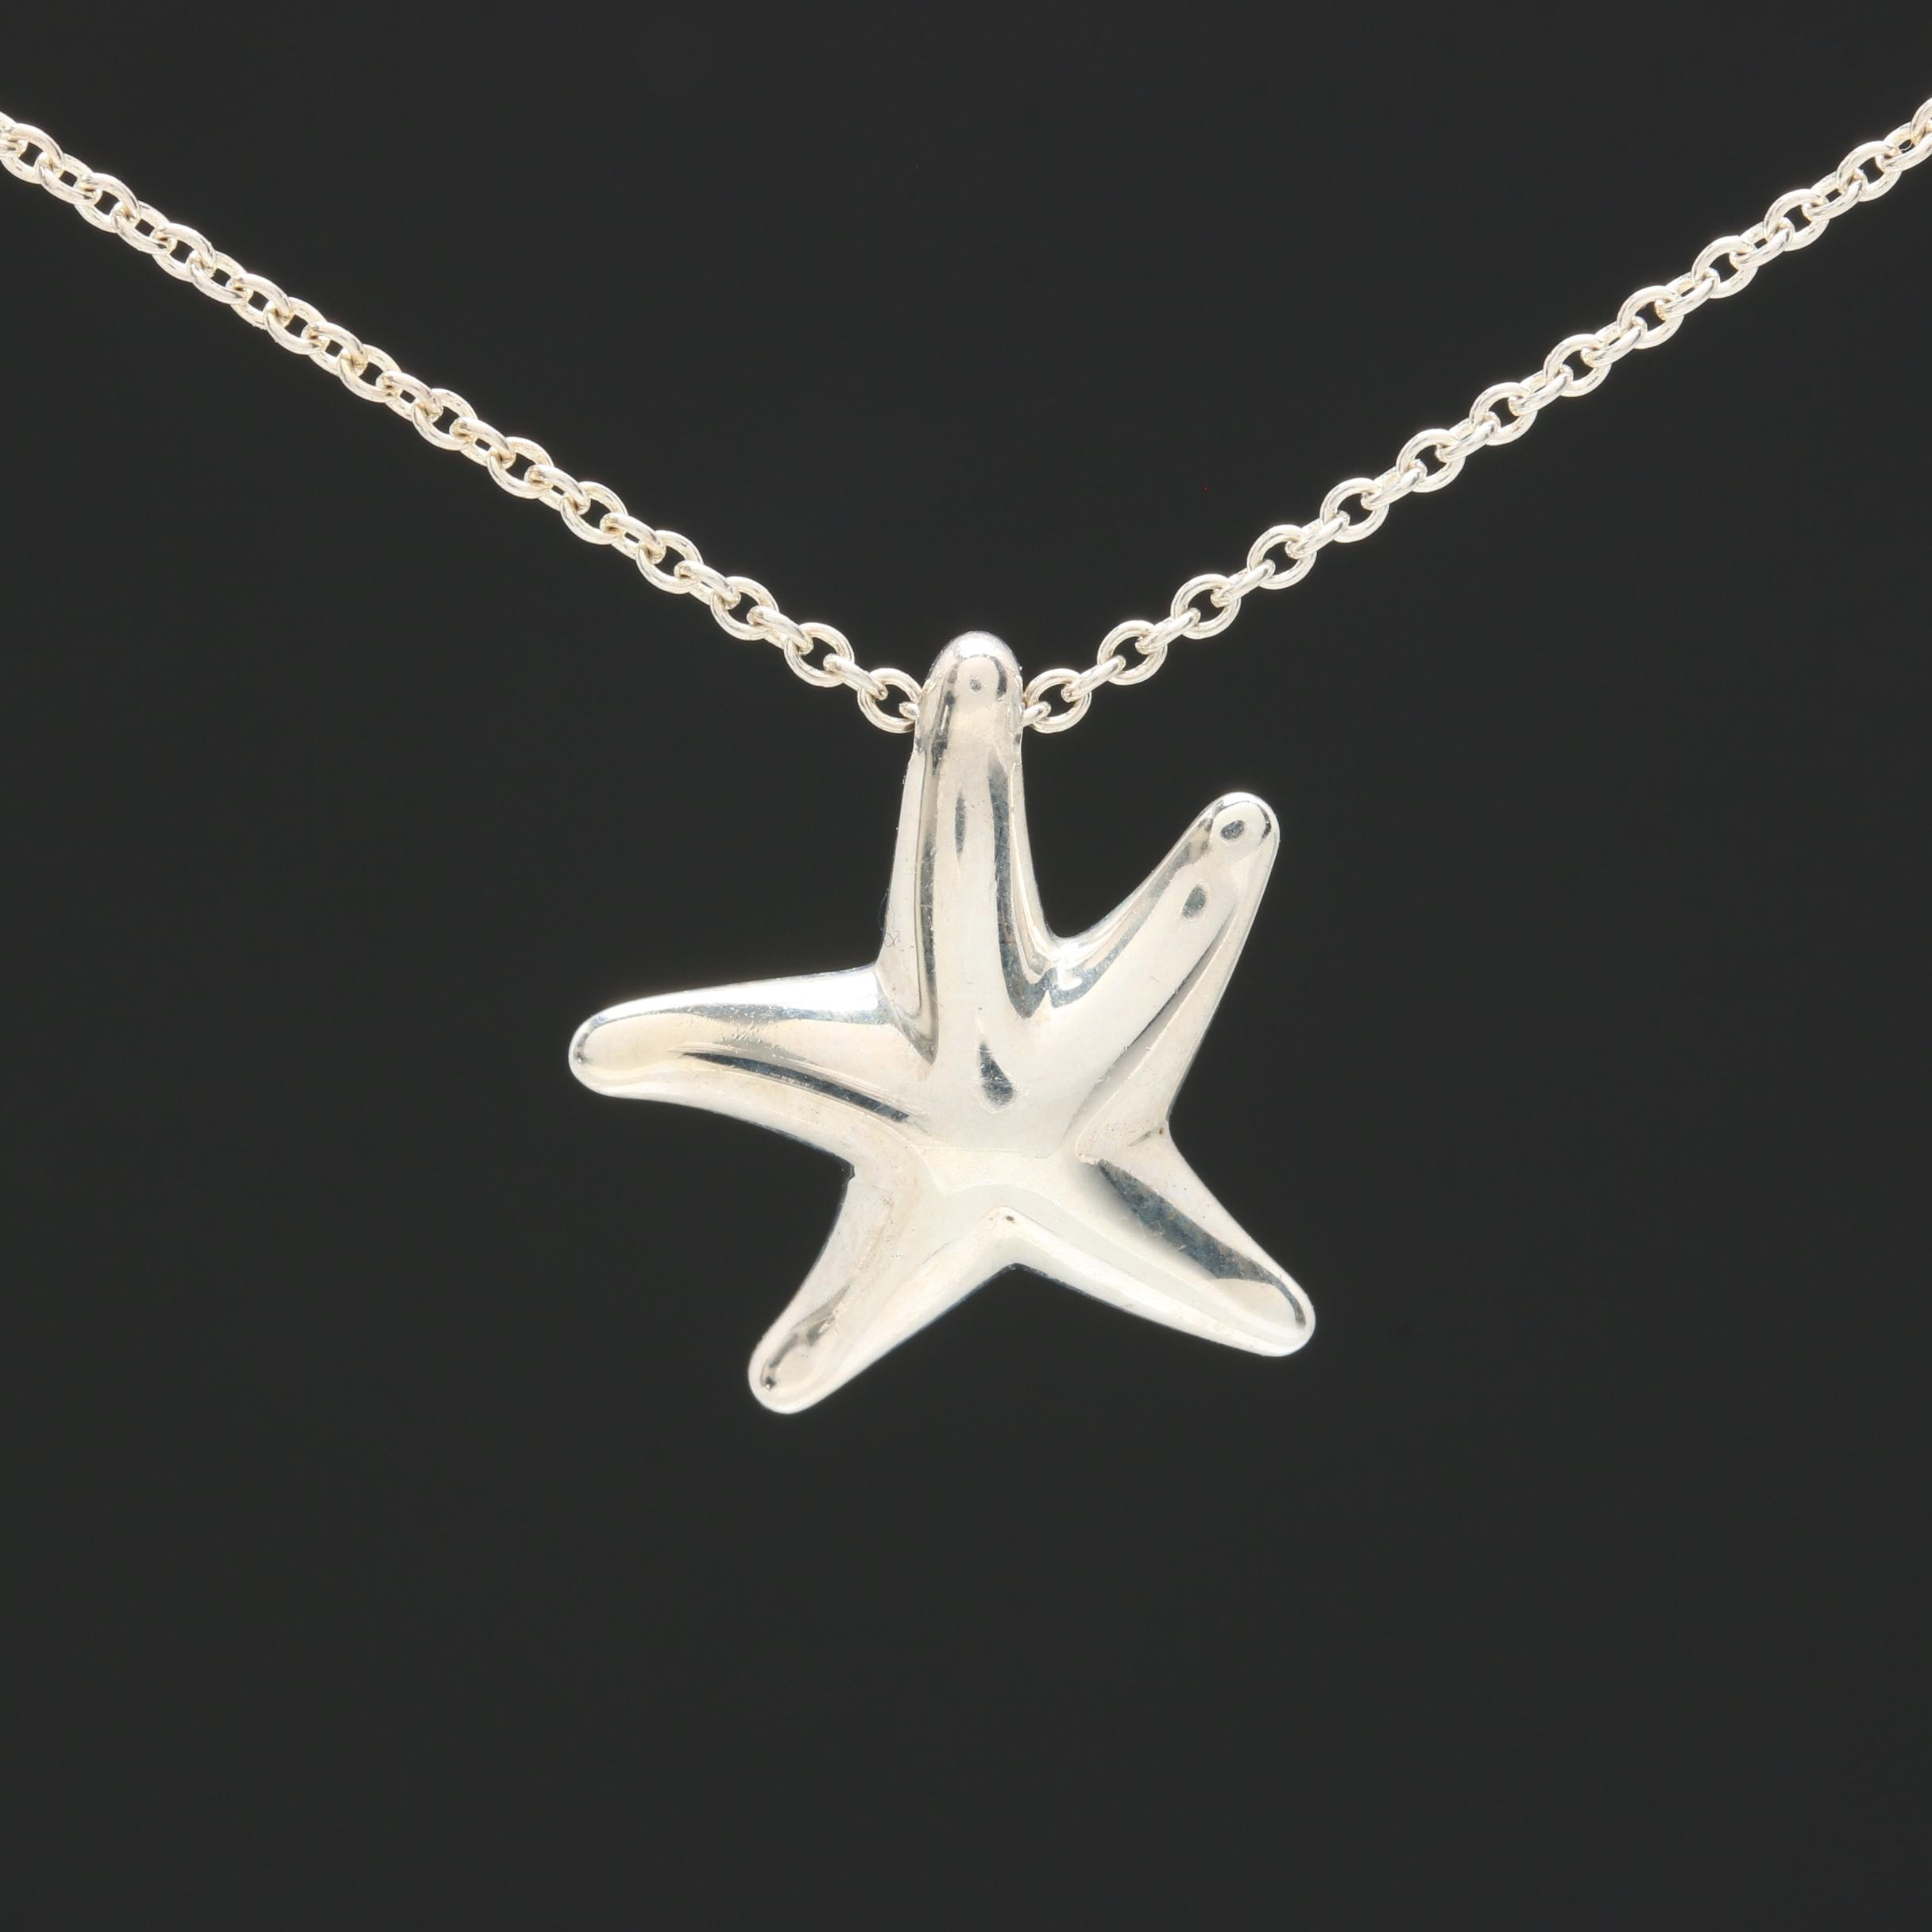 Elsa Peretti for Tiffany & Co. Sterling Silver Starfish Pendant Necklace